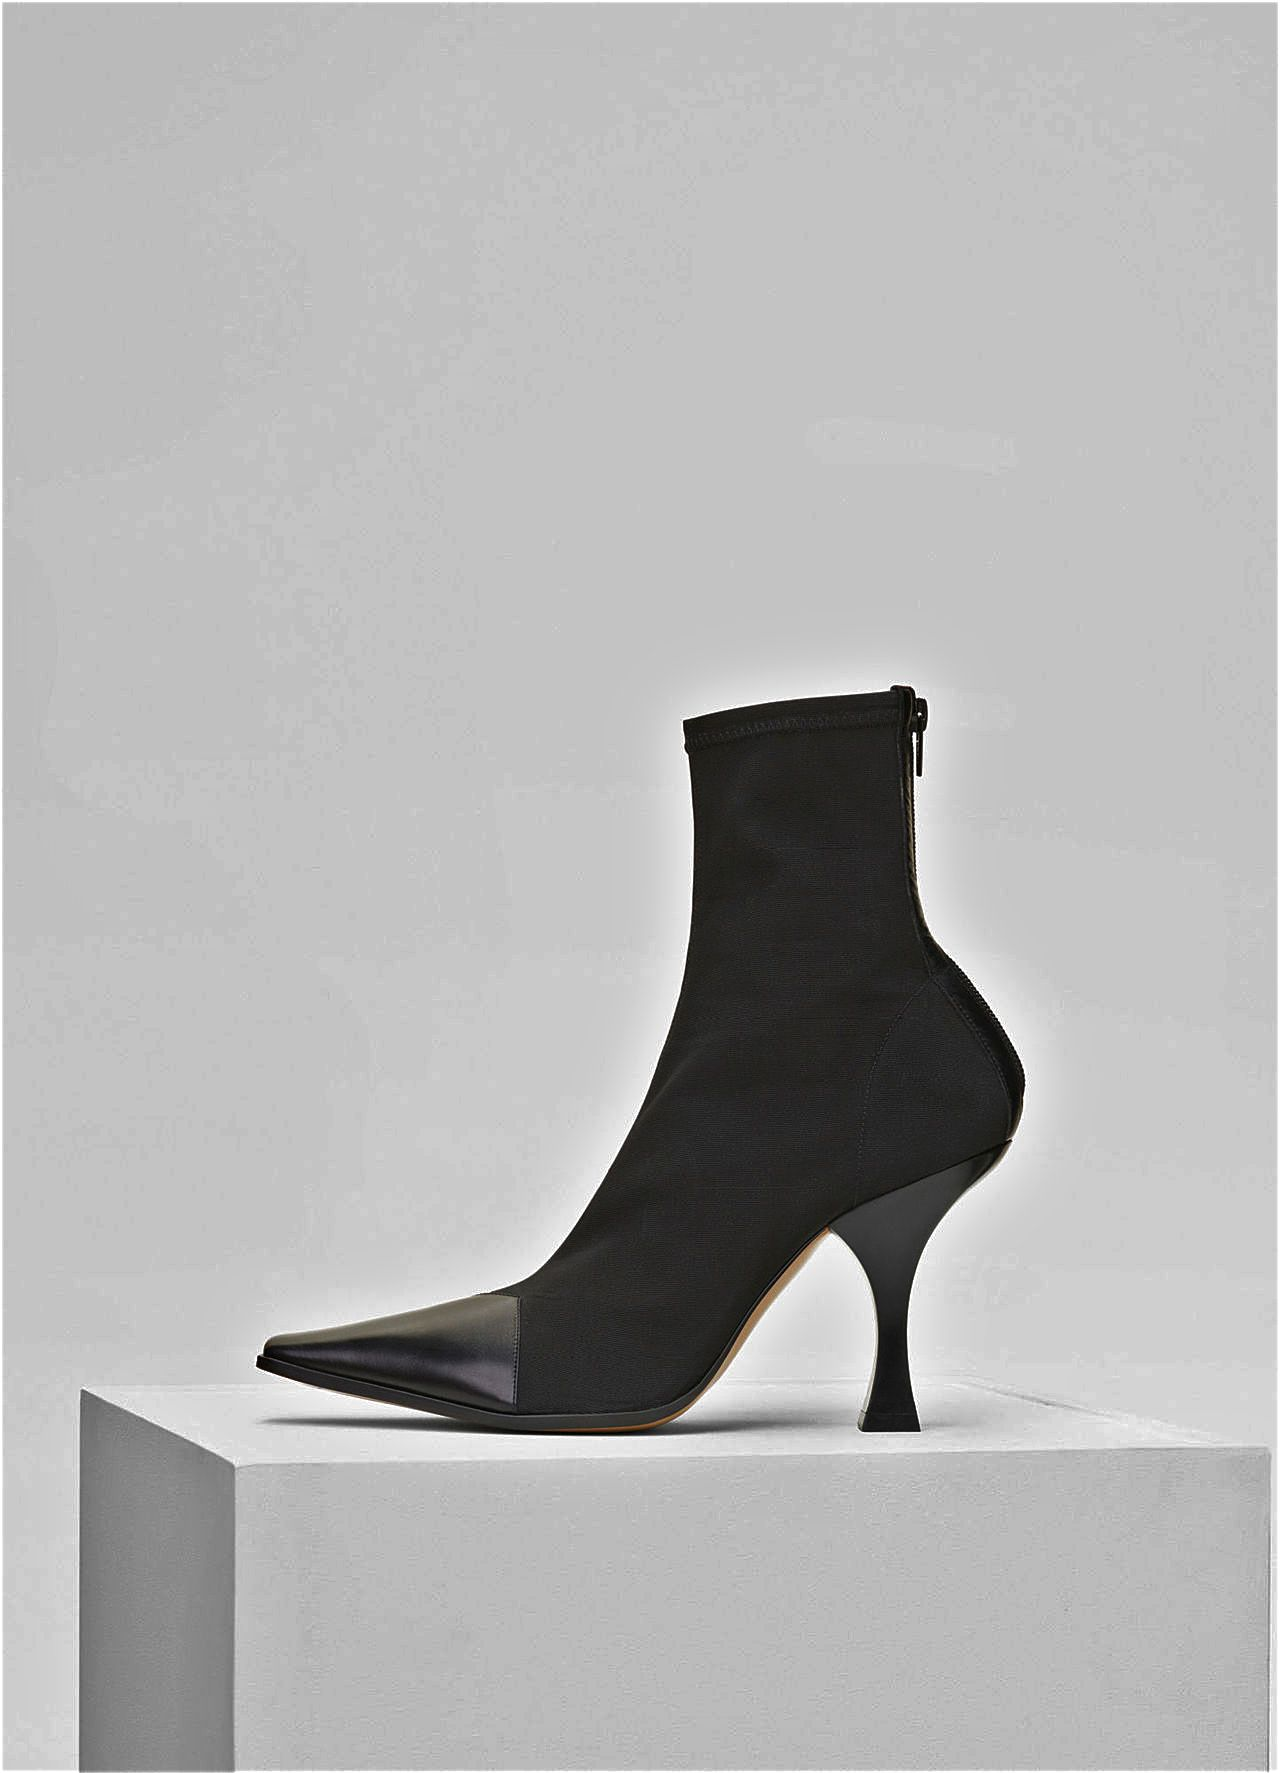 890493a8c5c0 Céline, Madame boots | Shoes | Shoes, Outfits, Yellow heels